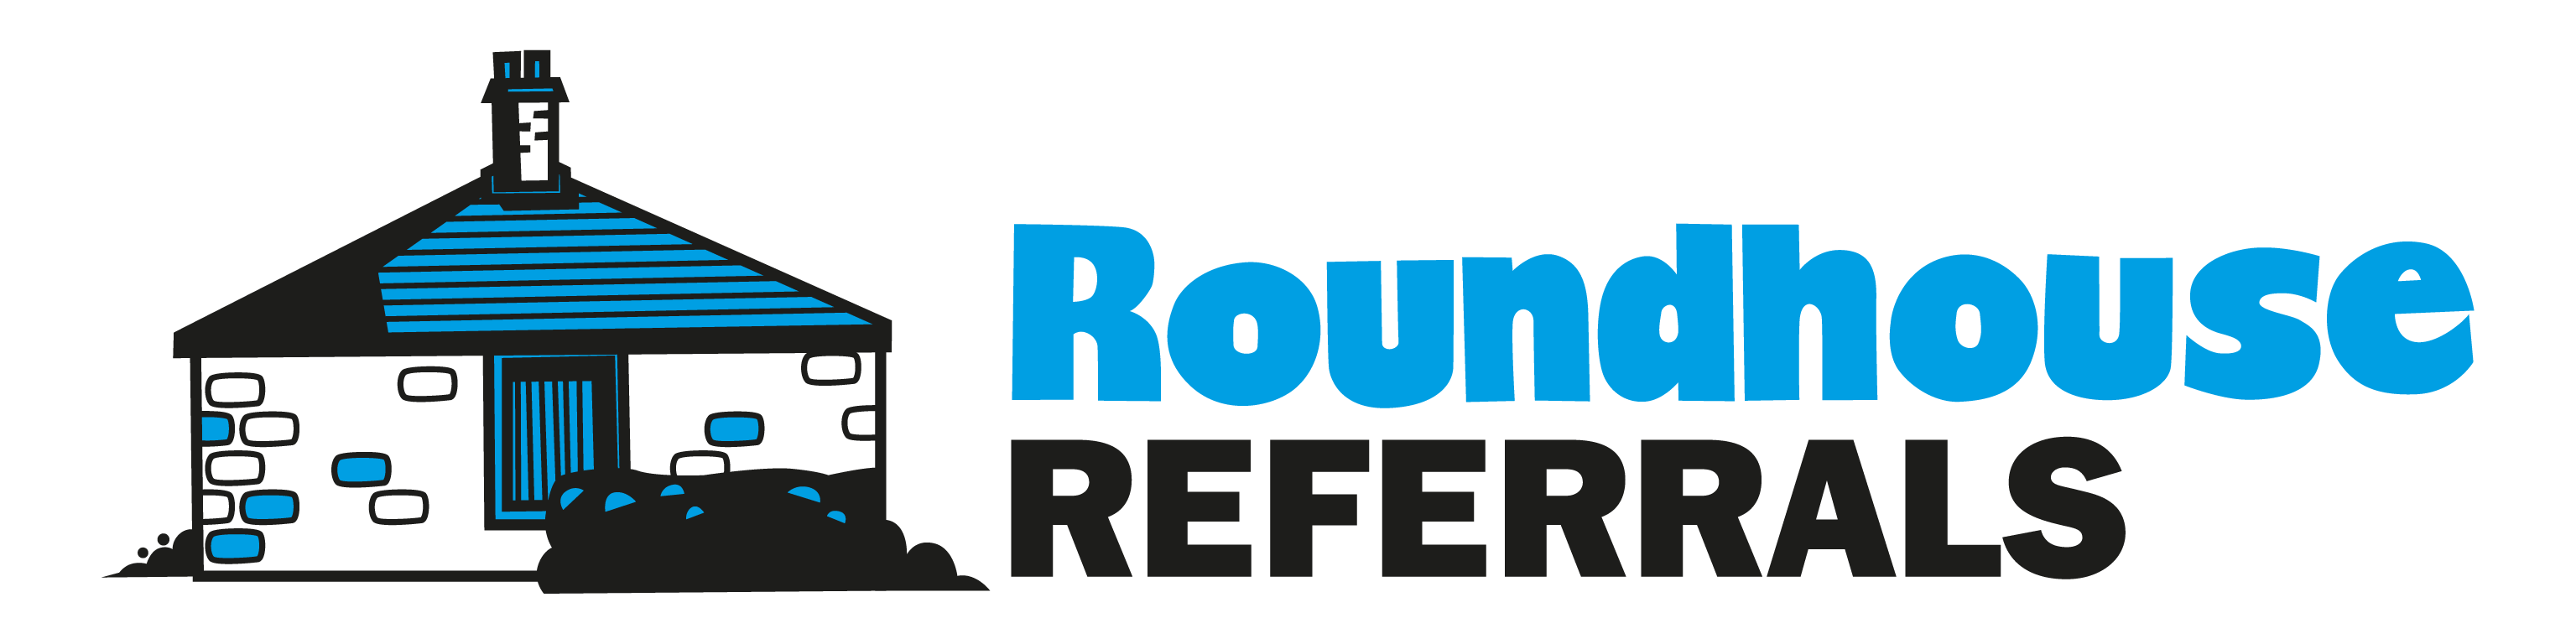 Roundhouse Referrals